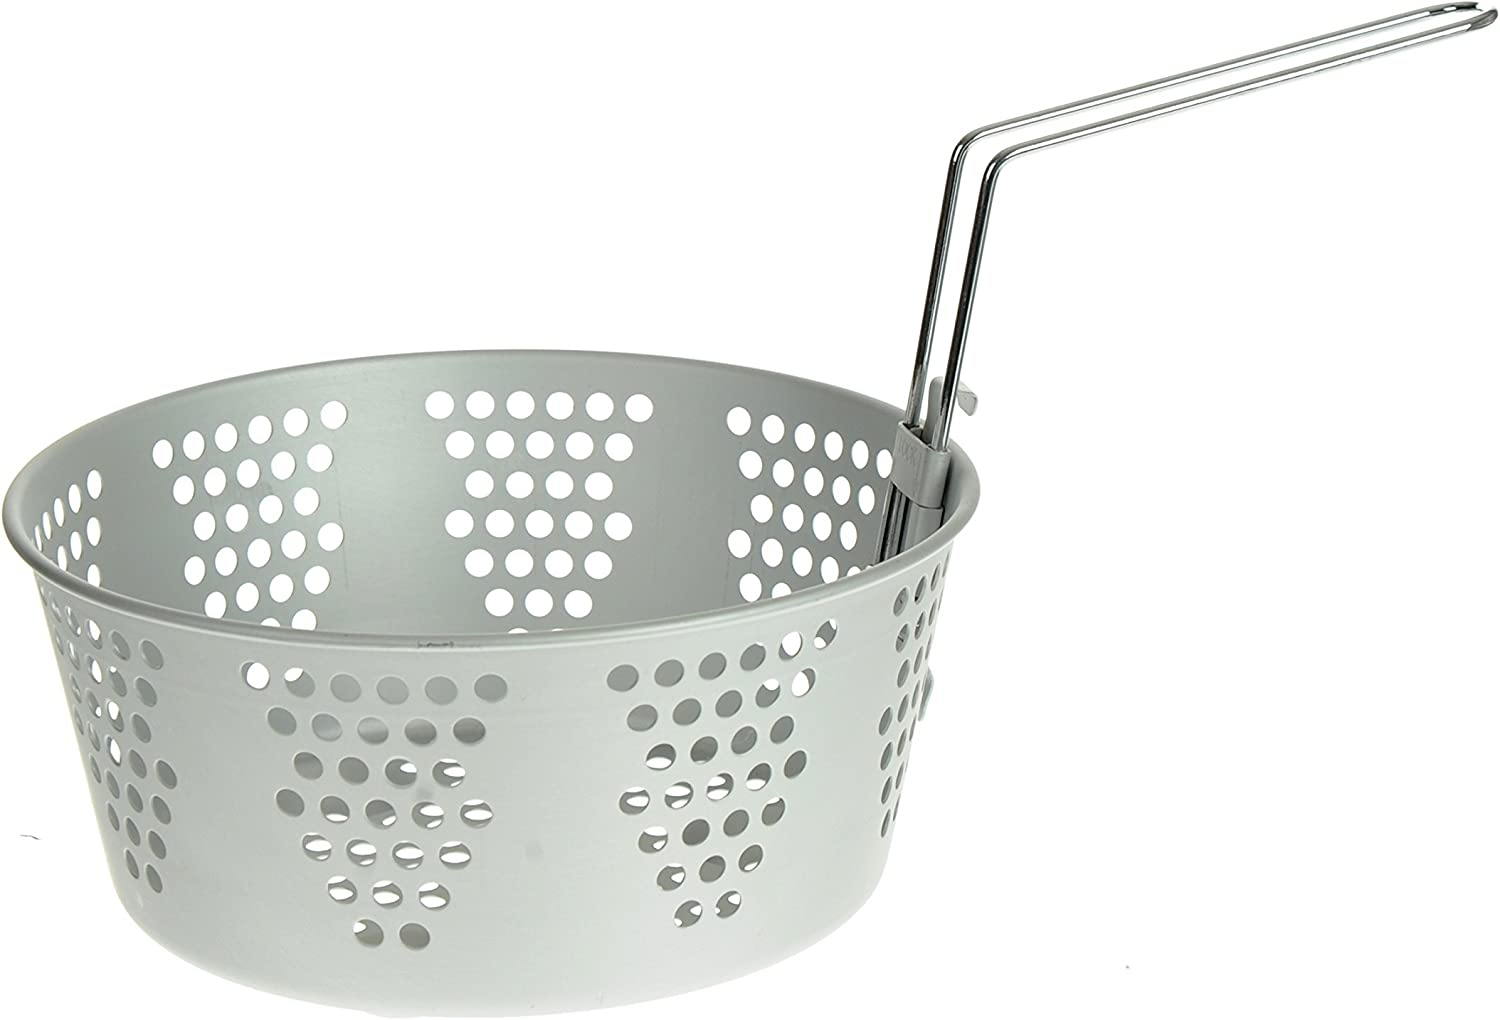 Cookmate Heavy Duty Die-Cast Deep Fryer /& Multi-Cooker ETL Listed Adjustable Temperature Gauge by Unity 6L Capacity Included Aluminum Basket /& Tempered Vented Glass Lid